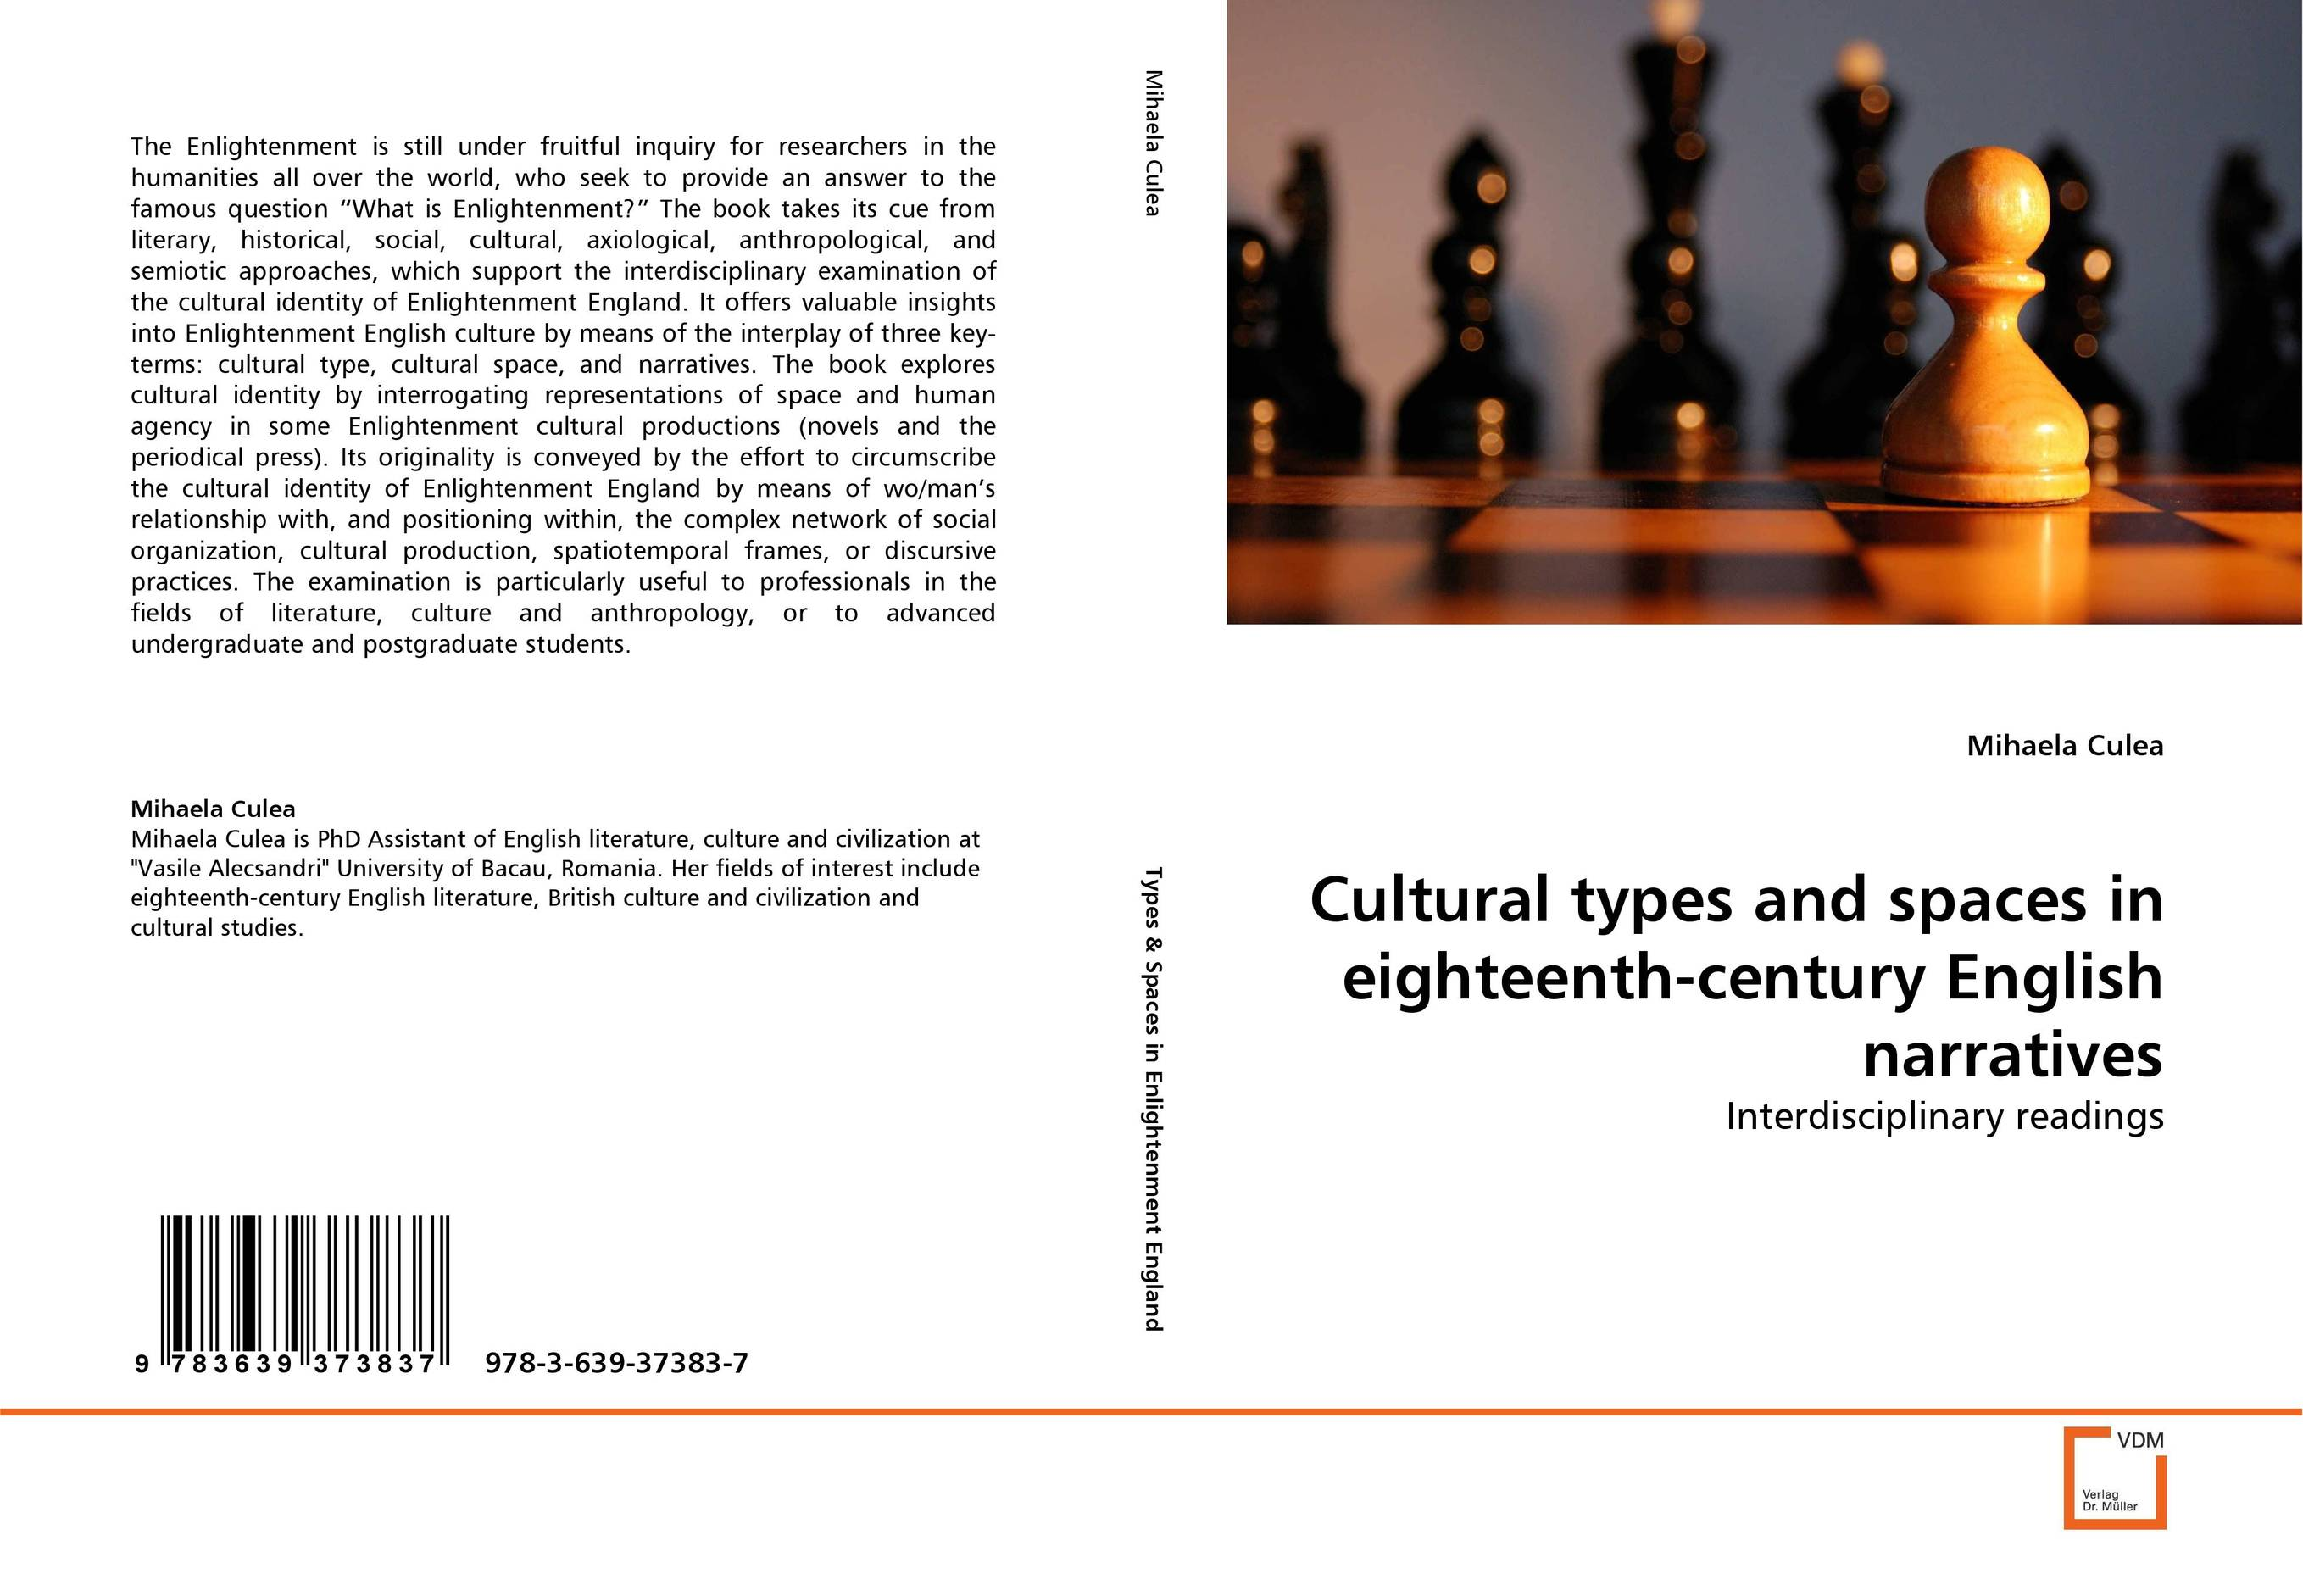 Cultural types and spaces in eighteenth-century English narratives theories and practices of human resource management from quran